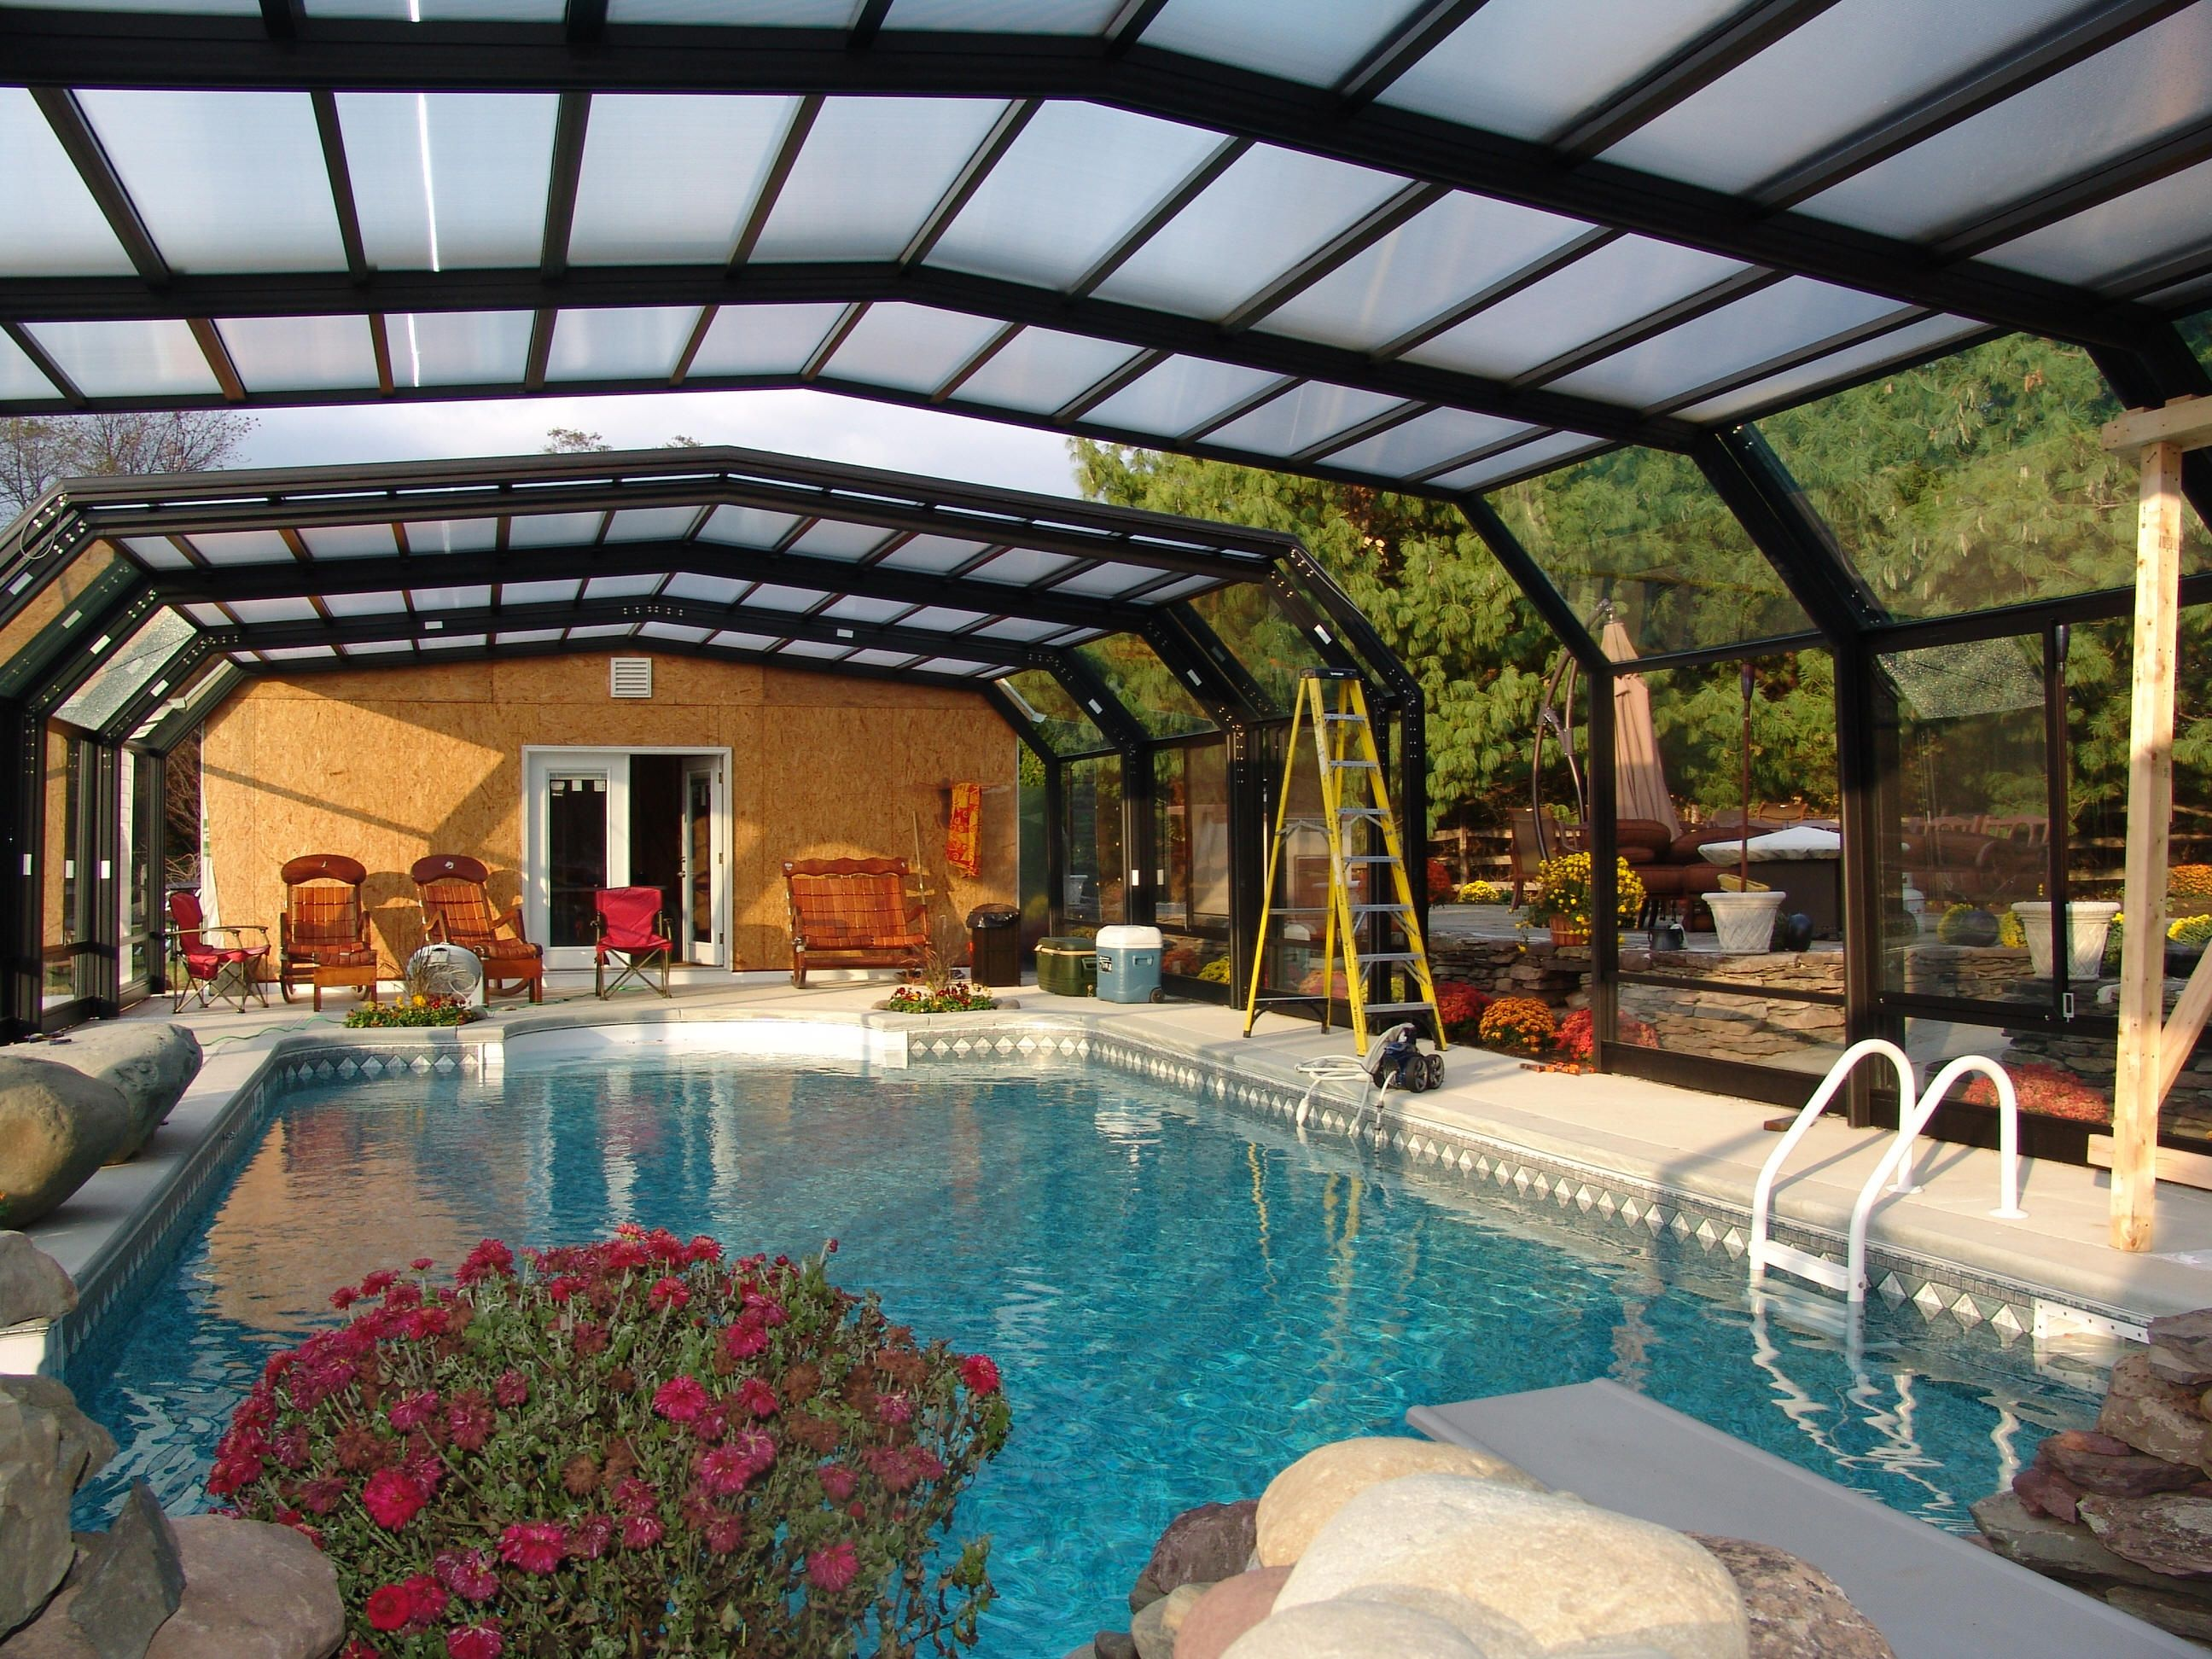 Trackless Retractable Enclosures Roll A Cover Sunrooms Pool Enclosures Restaurant Enclosures Pool Enclosures Residential Pool Indoor Outdoor Pool